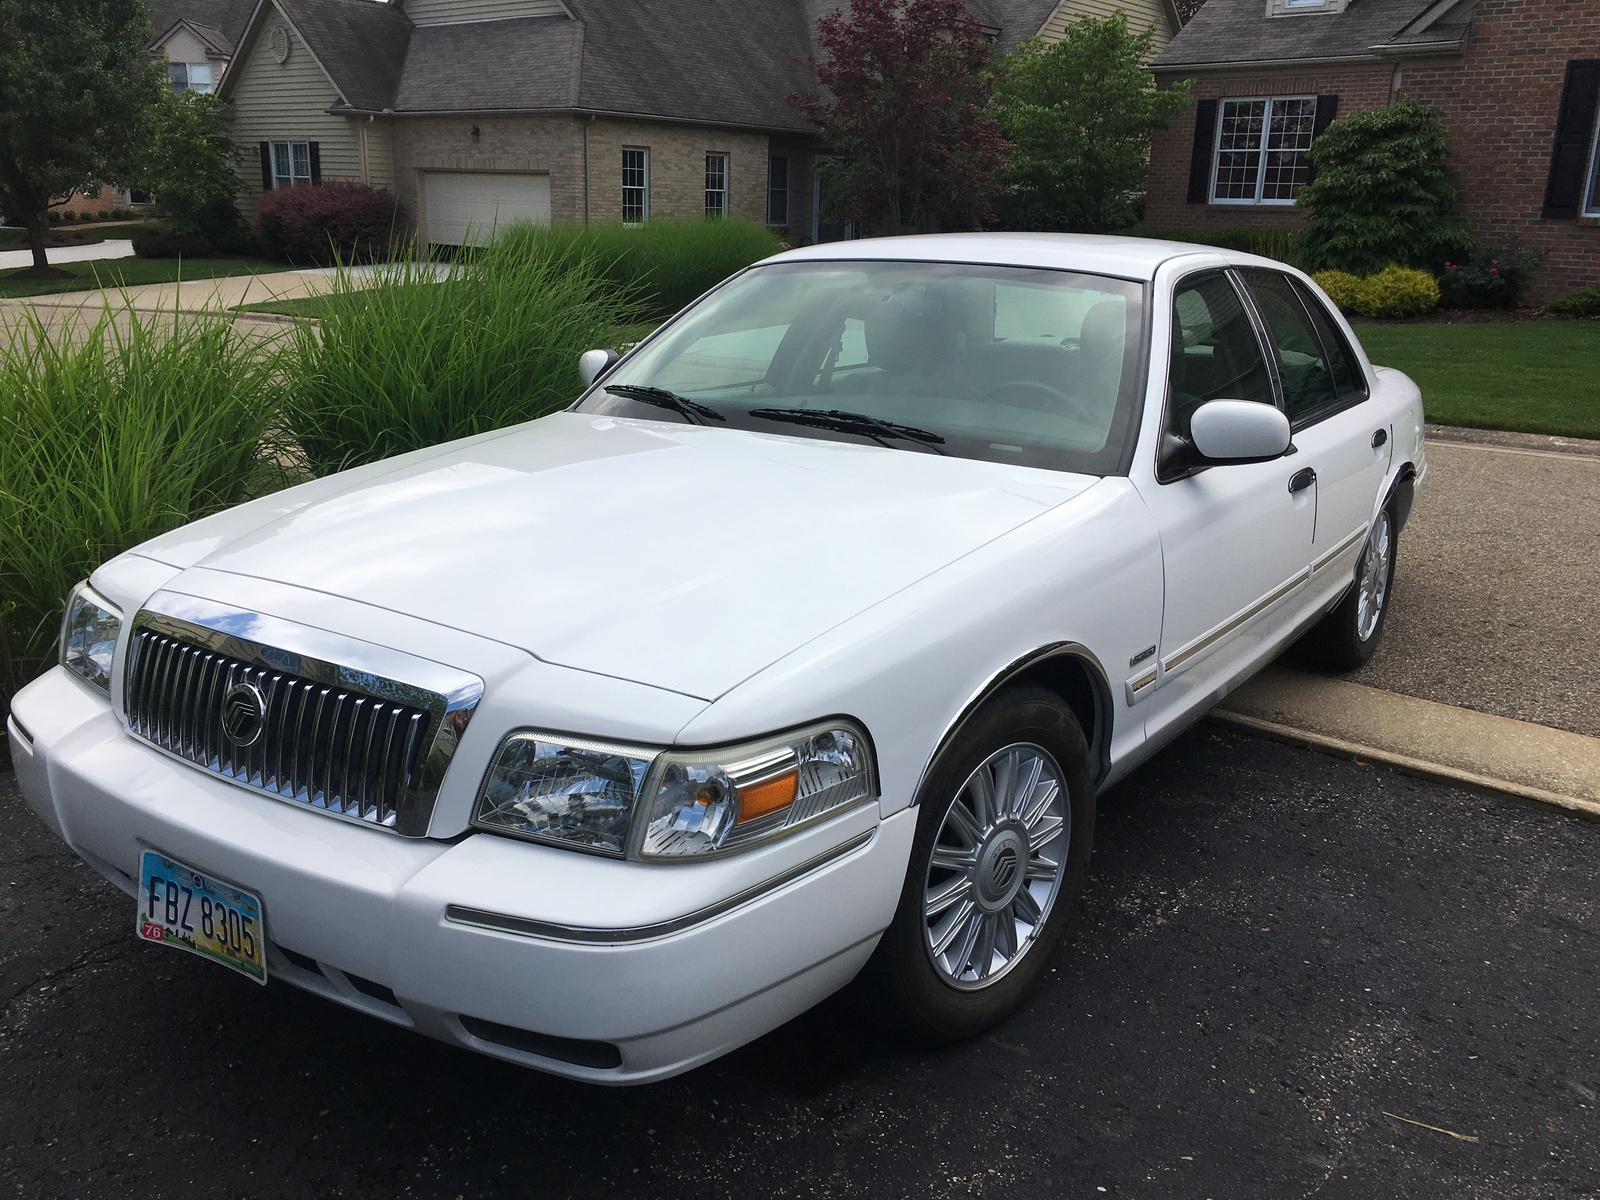 Subaru 0 Financing >> 2011 Mercury Grand Marquis - Overview - CarGurus